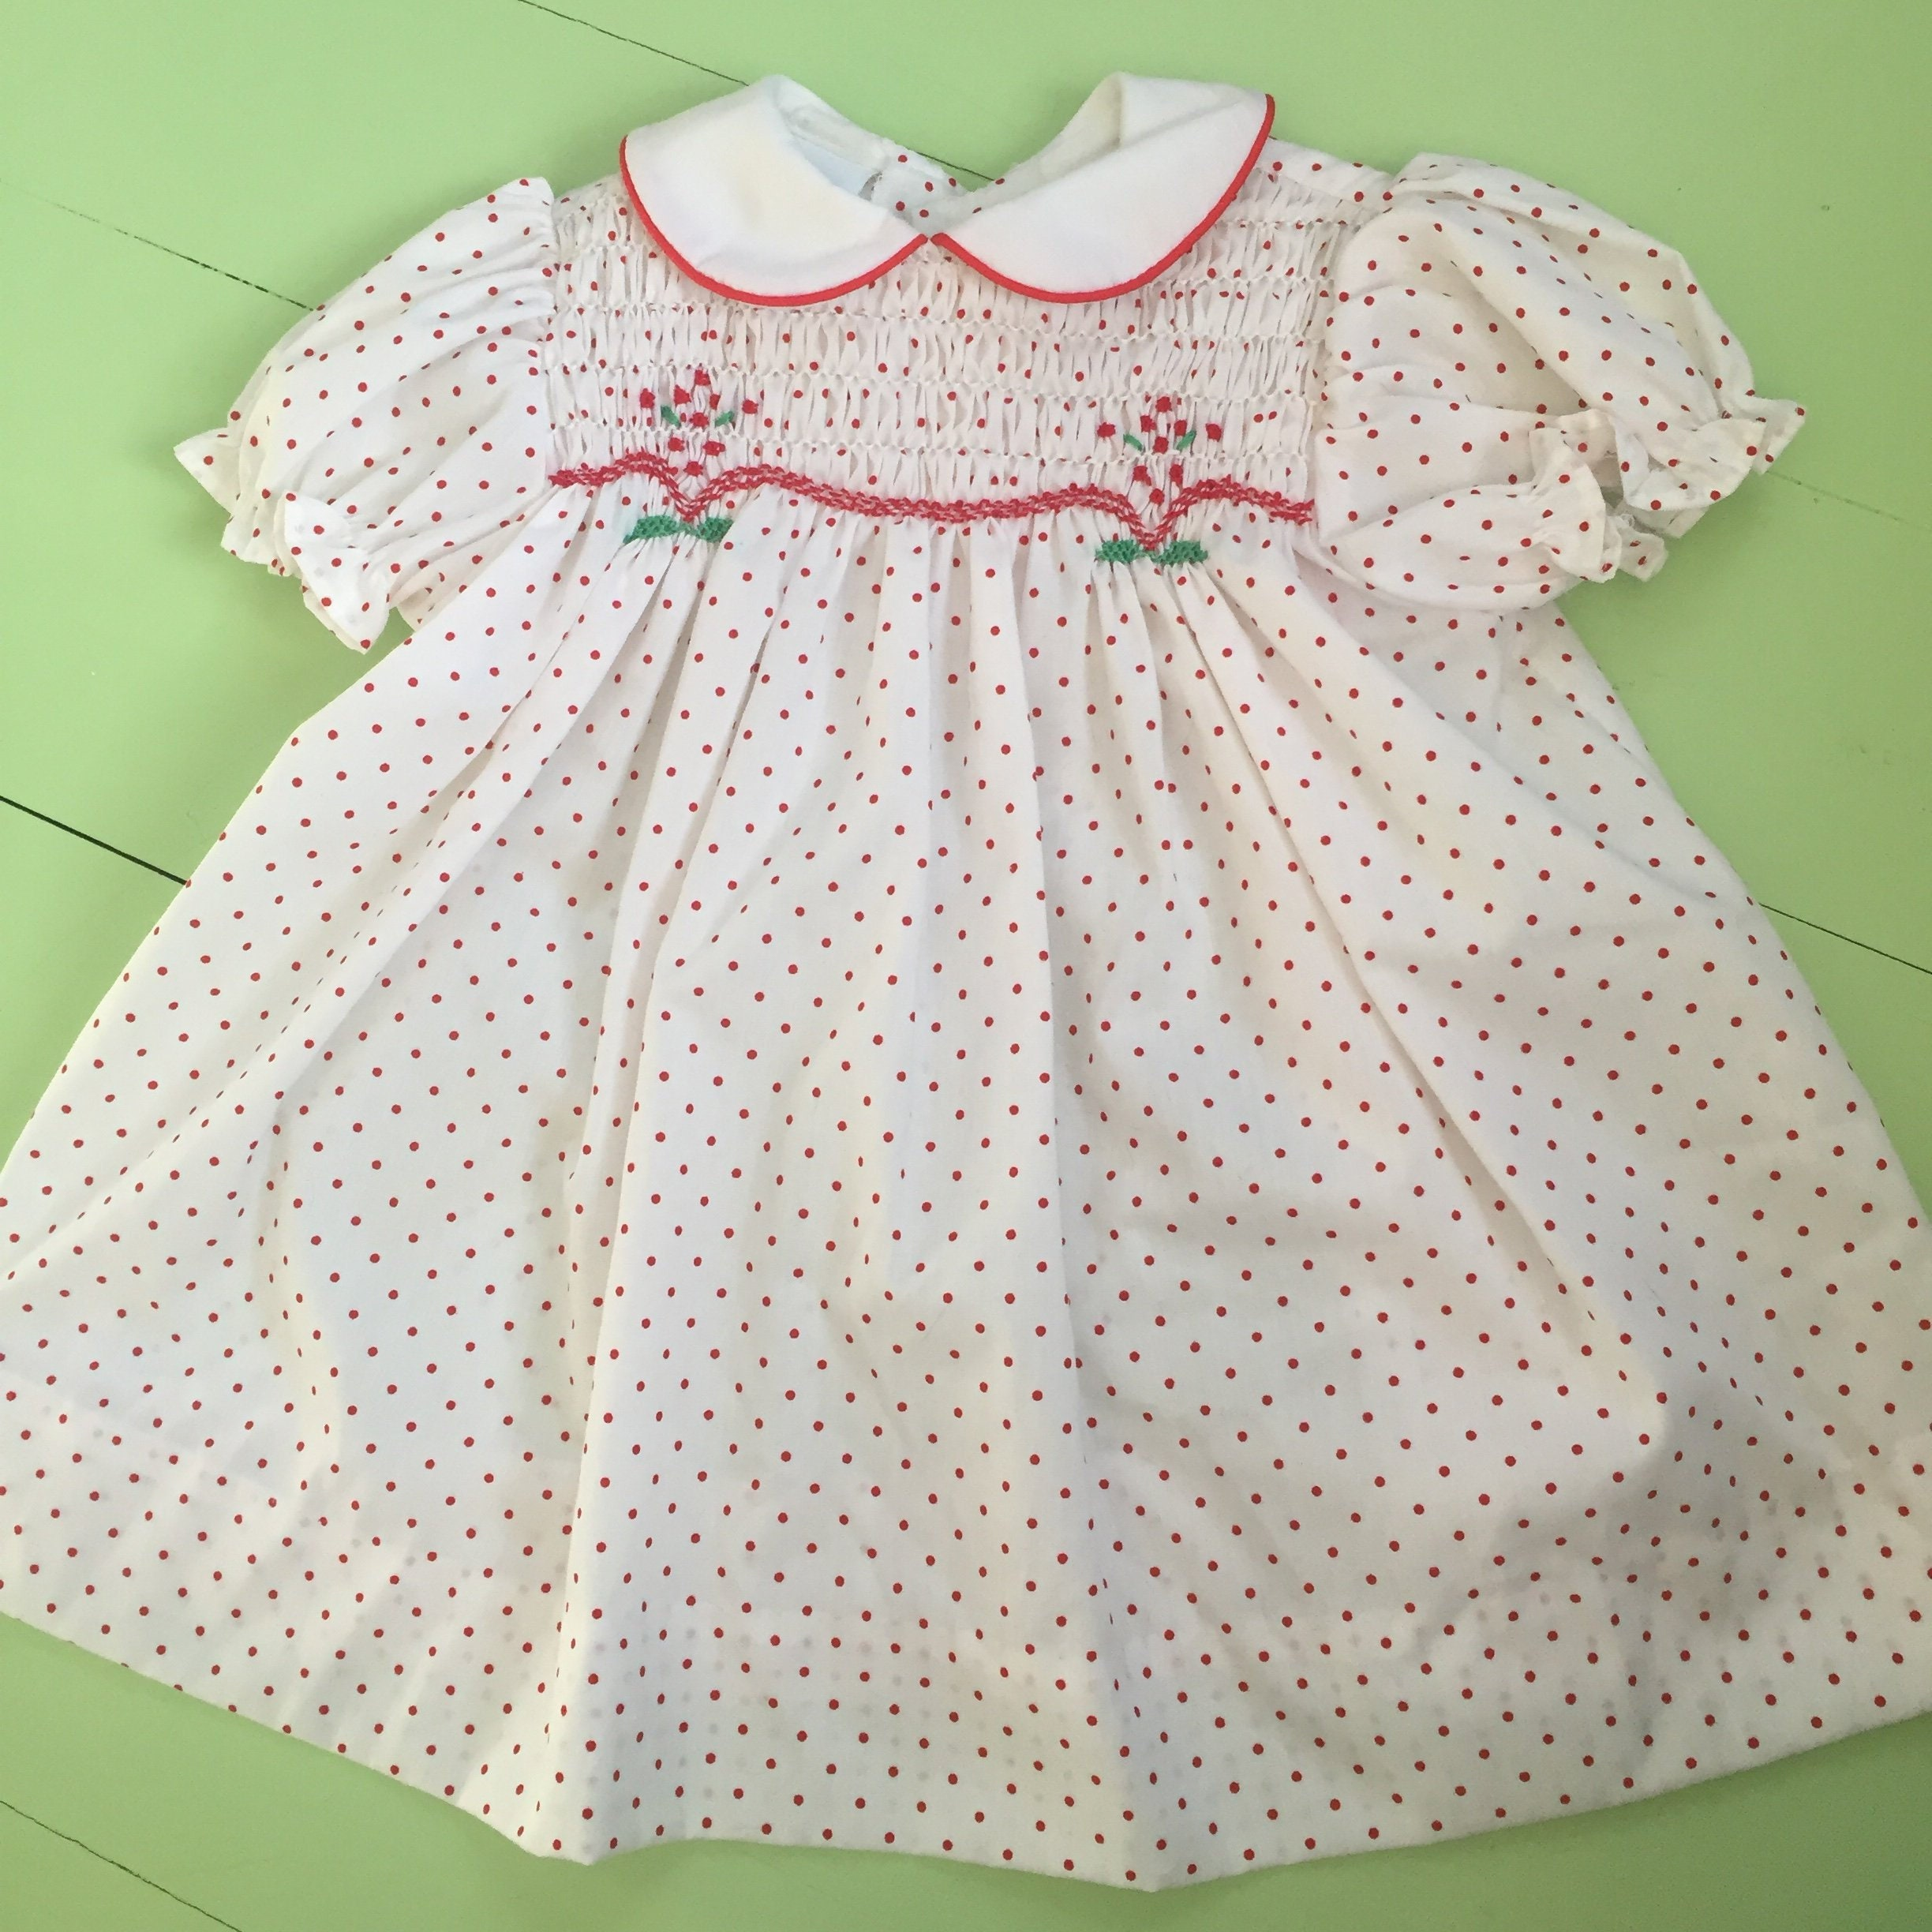 16c3c1be7 Vintage Polly Flinders Baby Dress, Size 12 months, Vintage Valentine's Day Baby  Dress, Vintage Smocked Baby Dress. gallery photo gallery photo ...